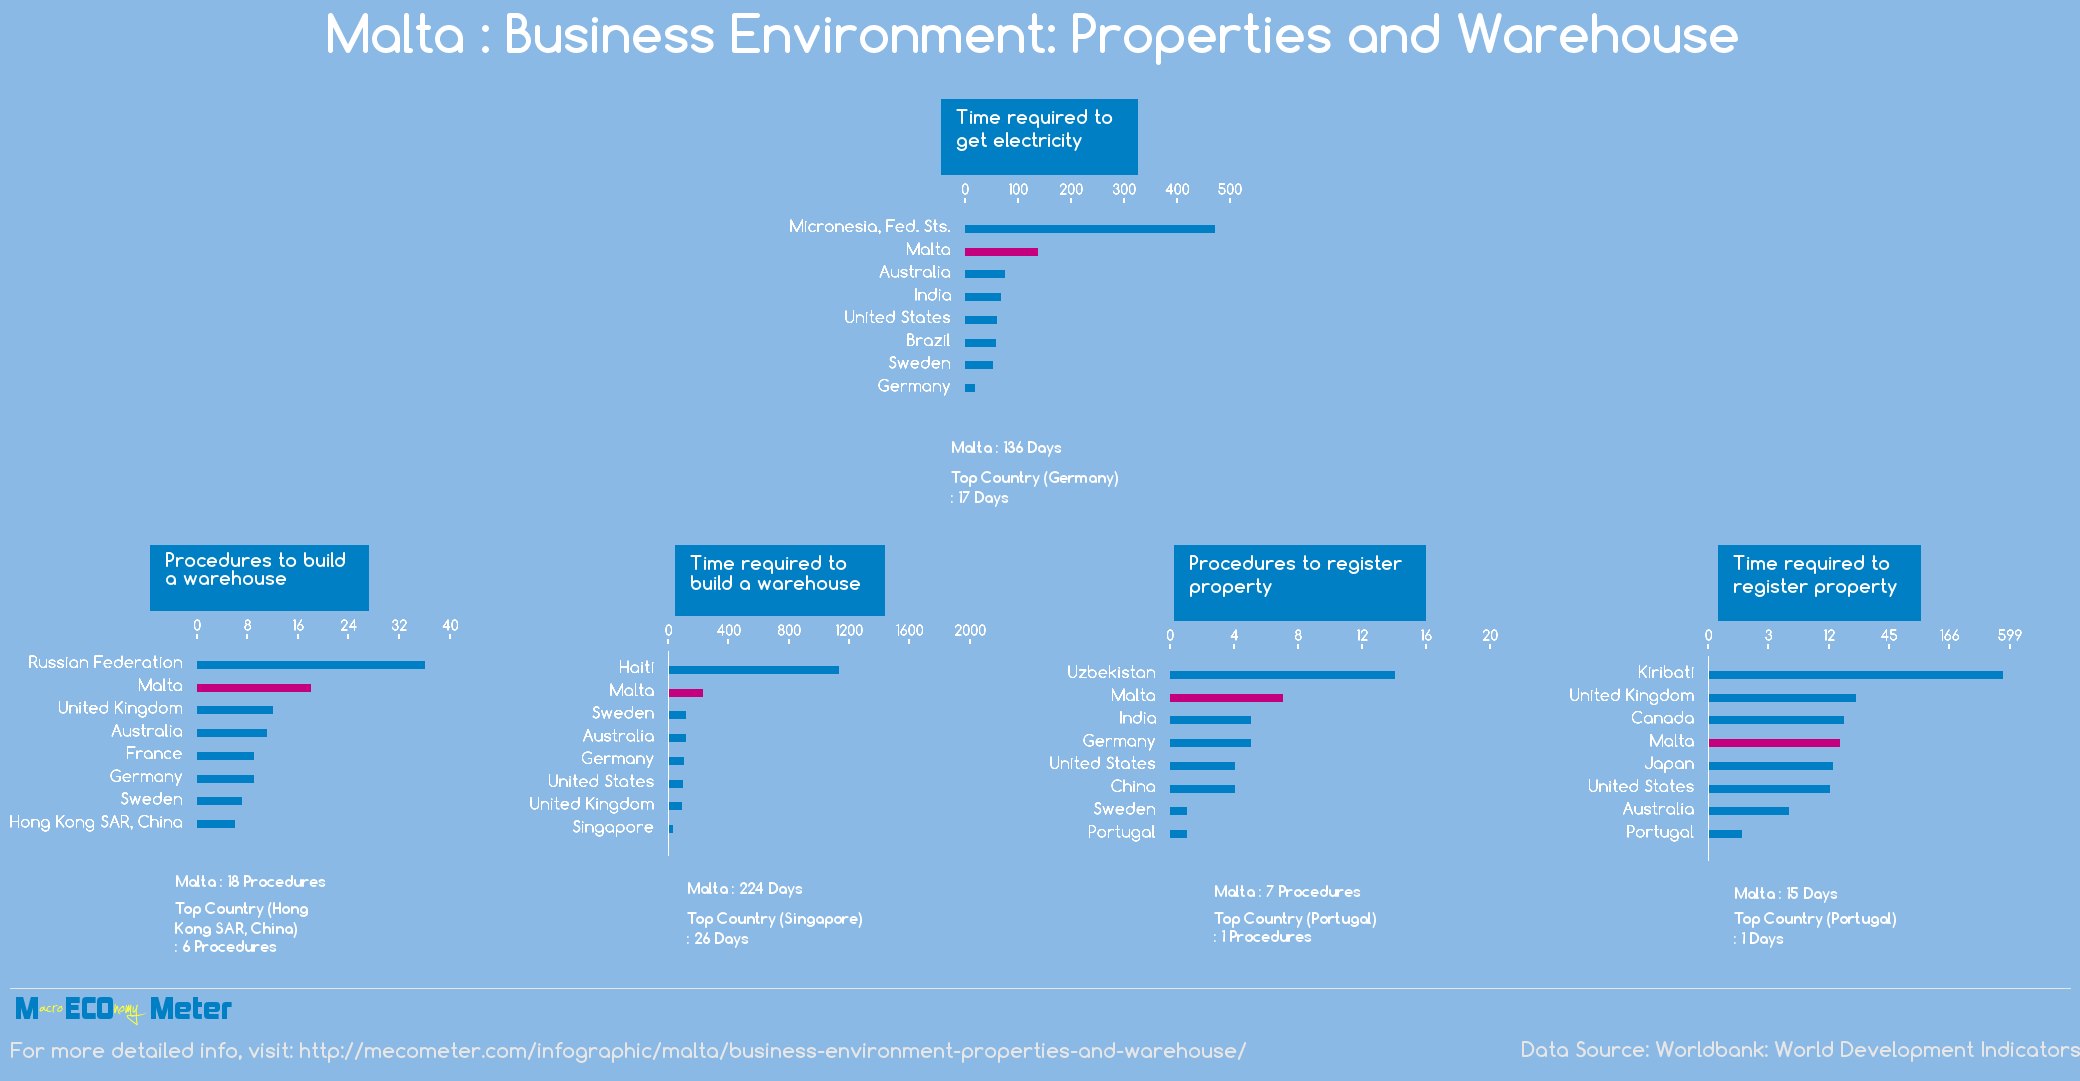 Malta : Business Environment: Properties and Warehouse